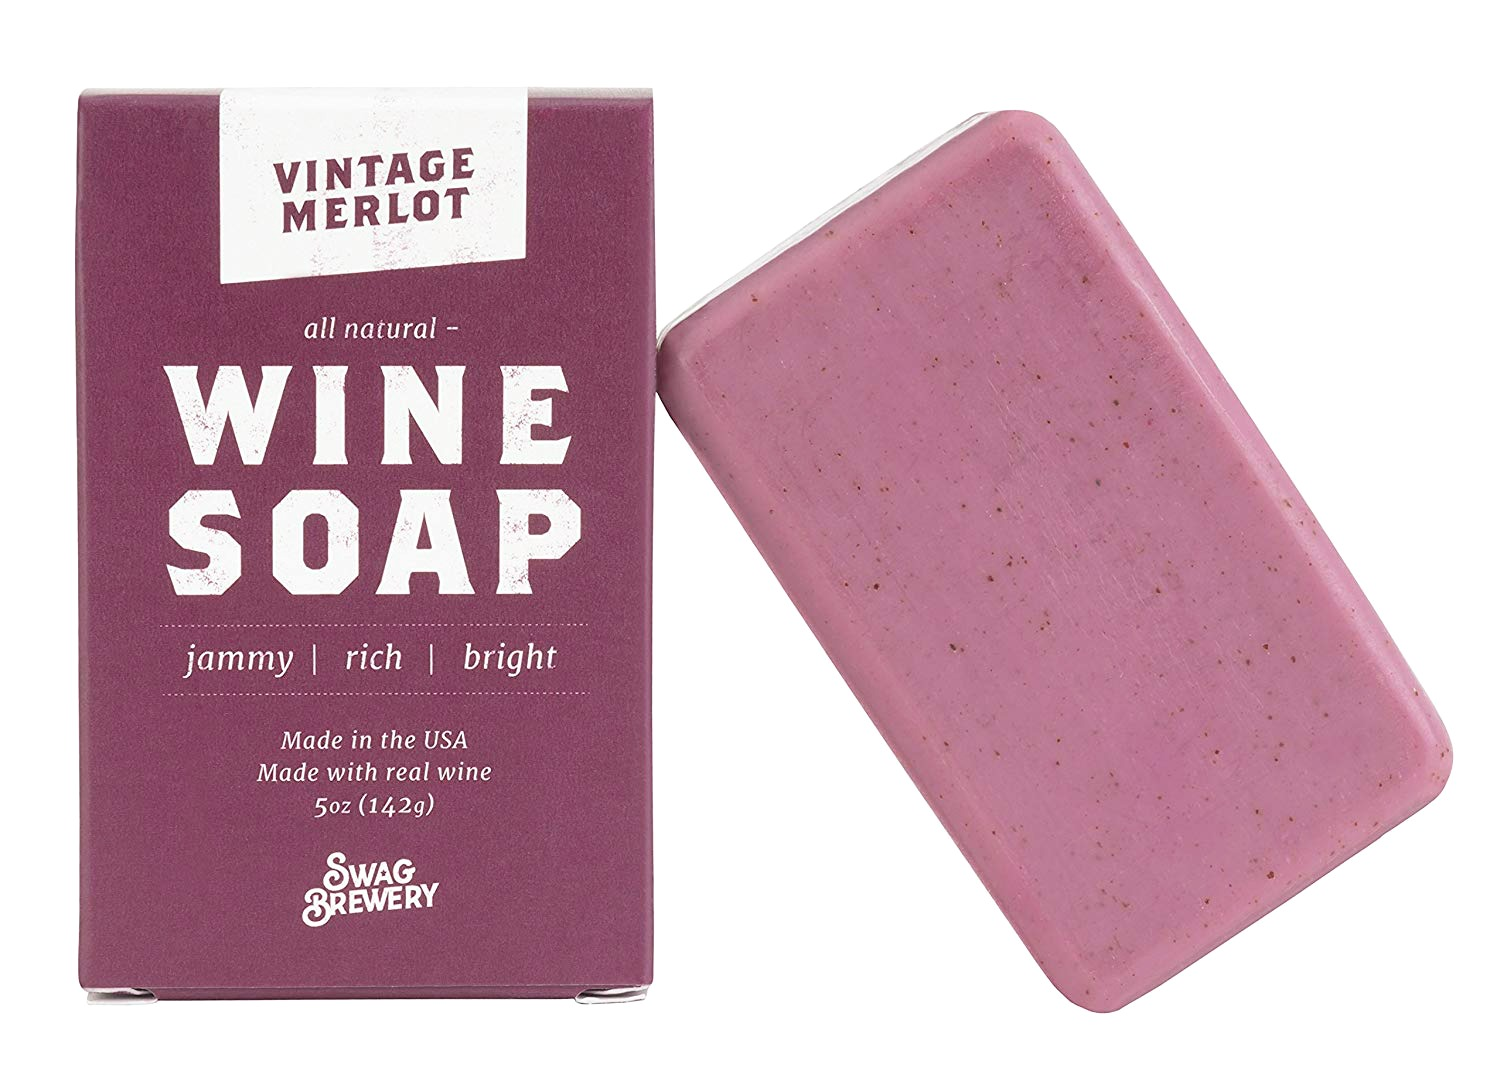 Vintage Merlot, an all natural wine soap is shown leaning on its box that is branded, it's a deep rich, wine coloured soap.